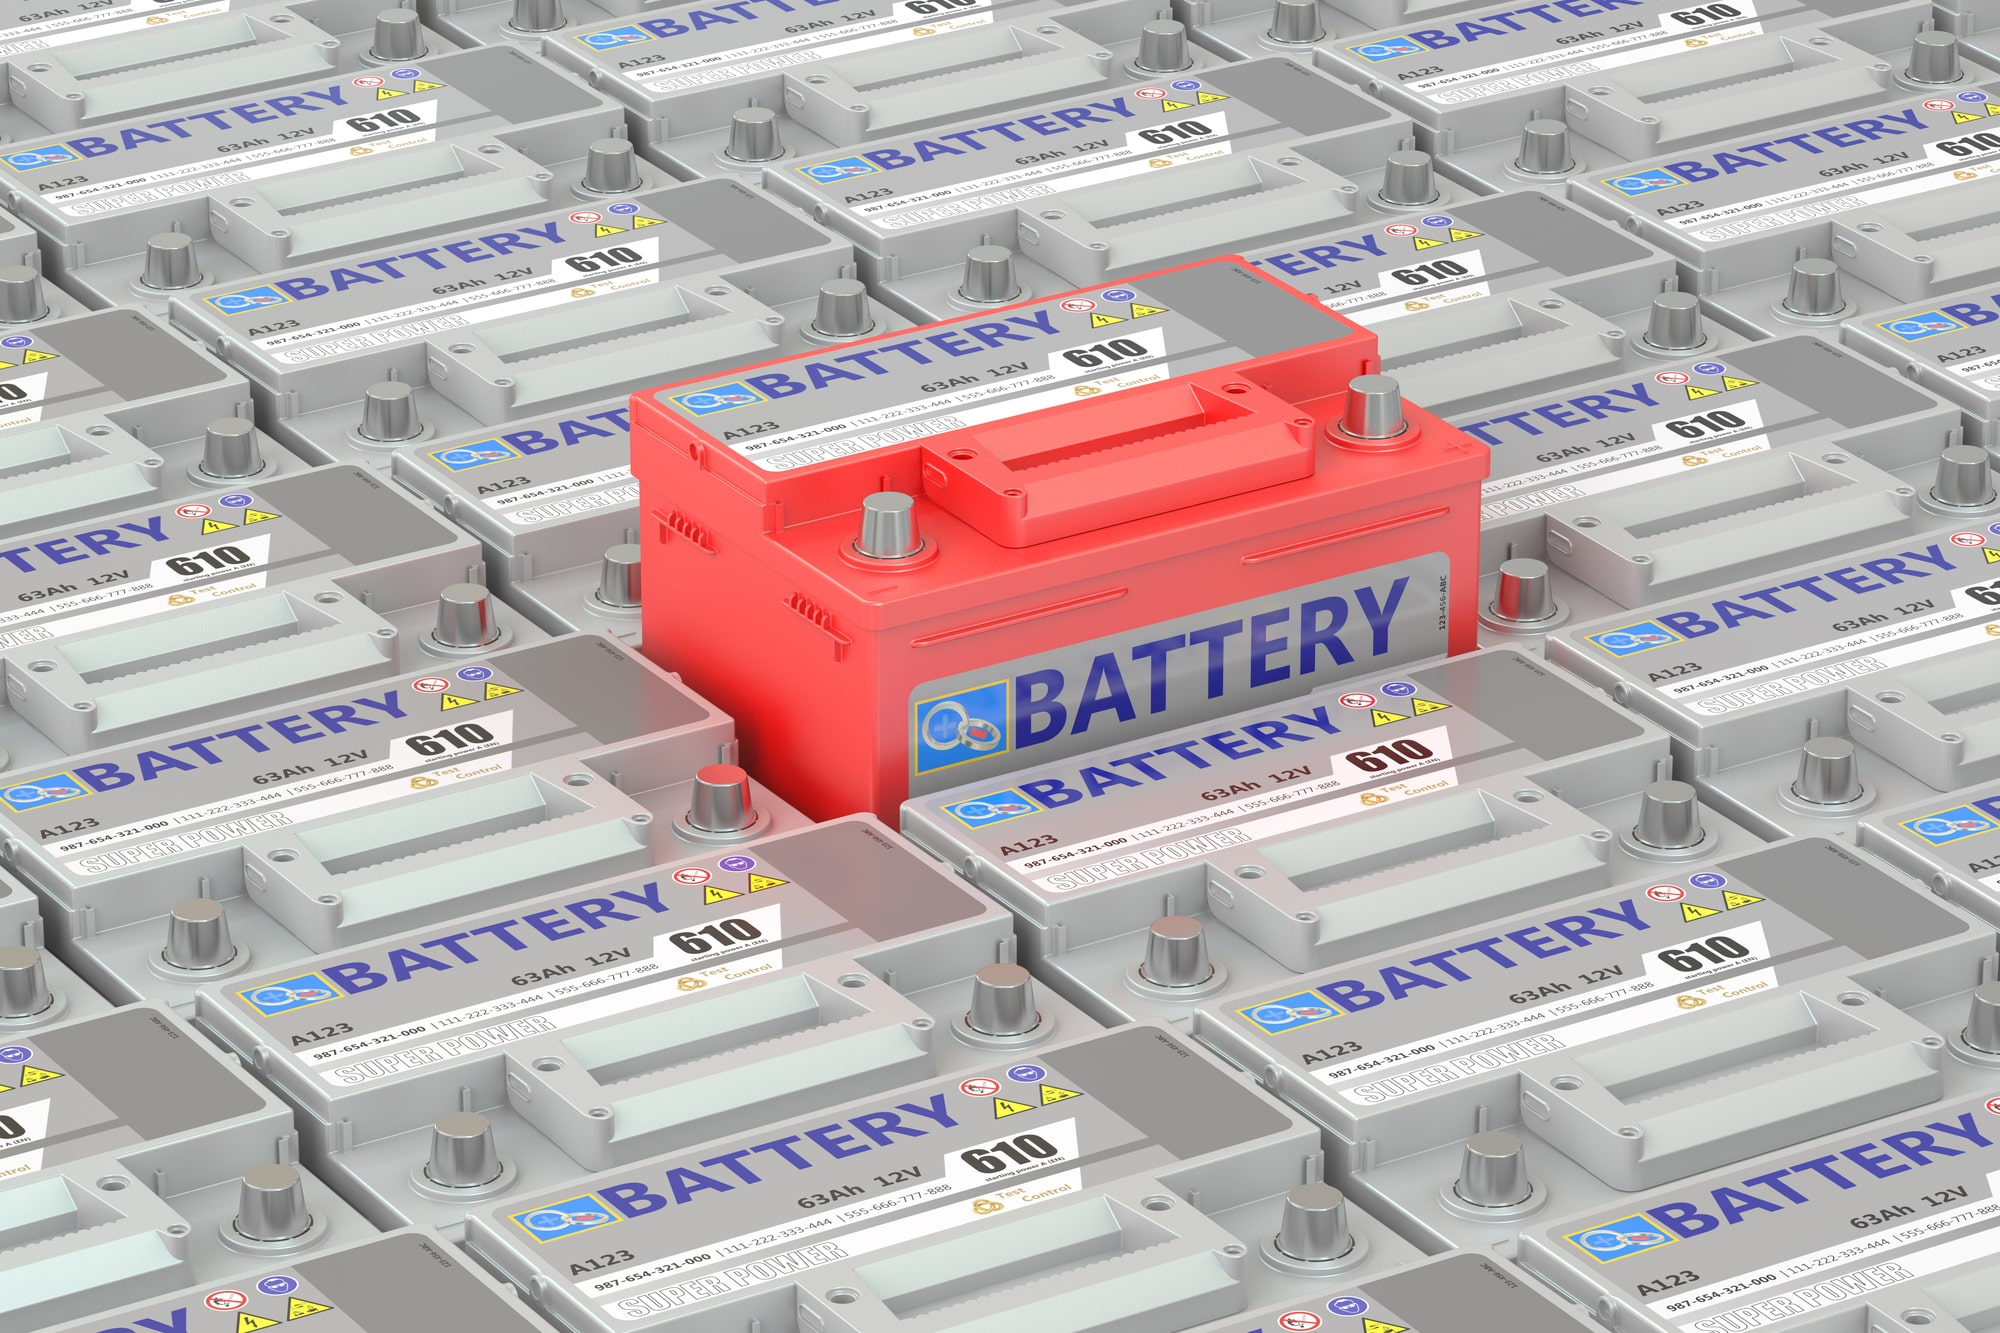 How to recycle old batteries from the electric car, and why is this a problem?